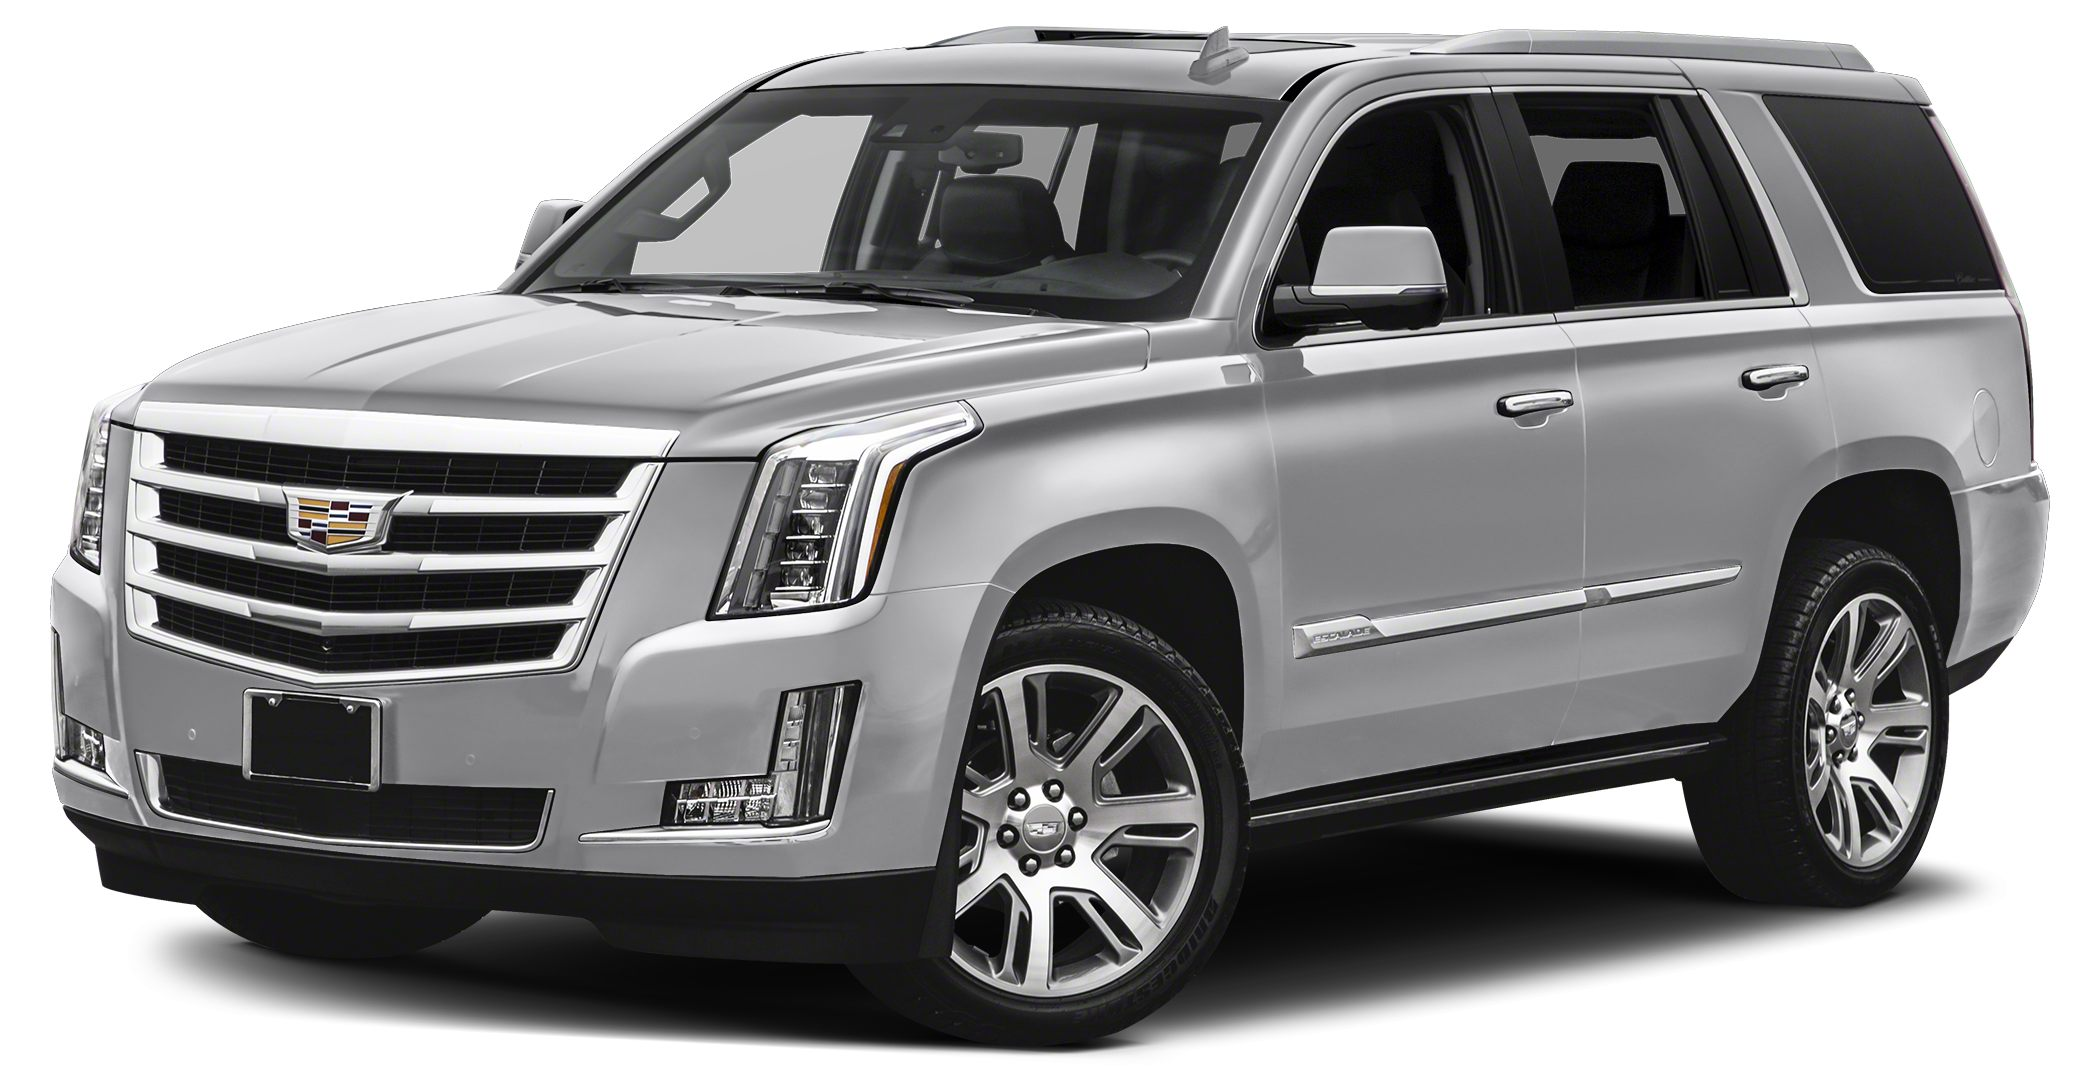 2016 Cadillac Escalade Premium Collection The well-recognized Escalade has been among the Kings of